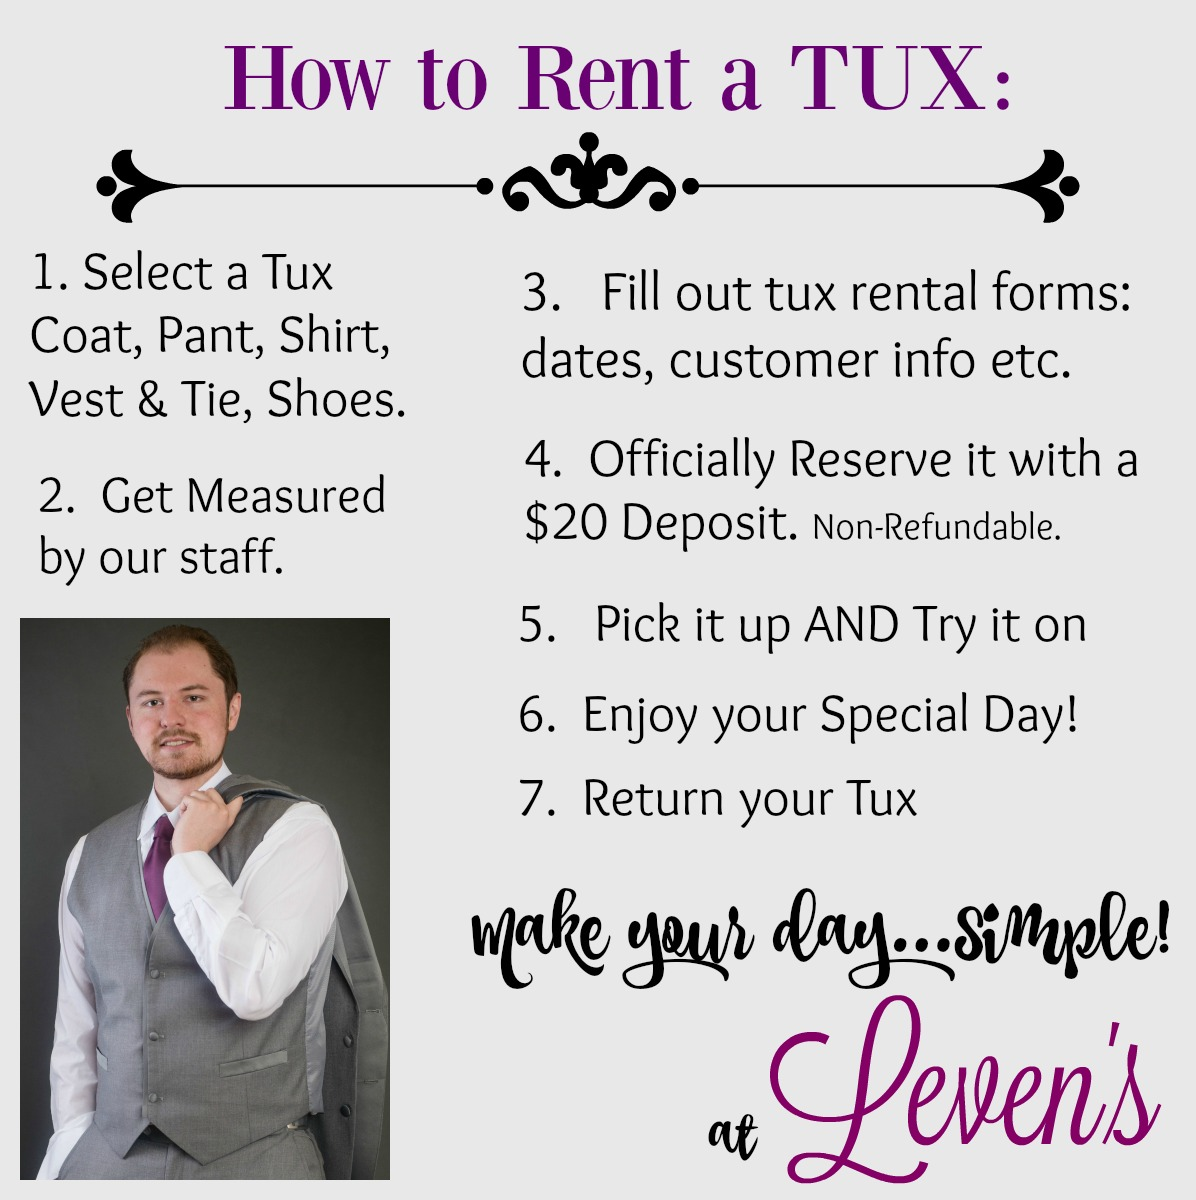 How to Rent a Tux.